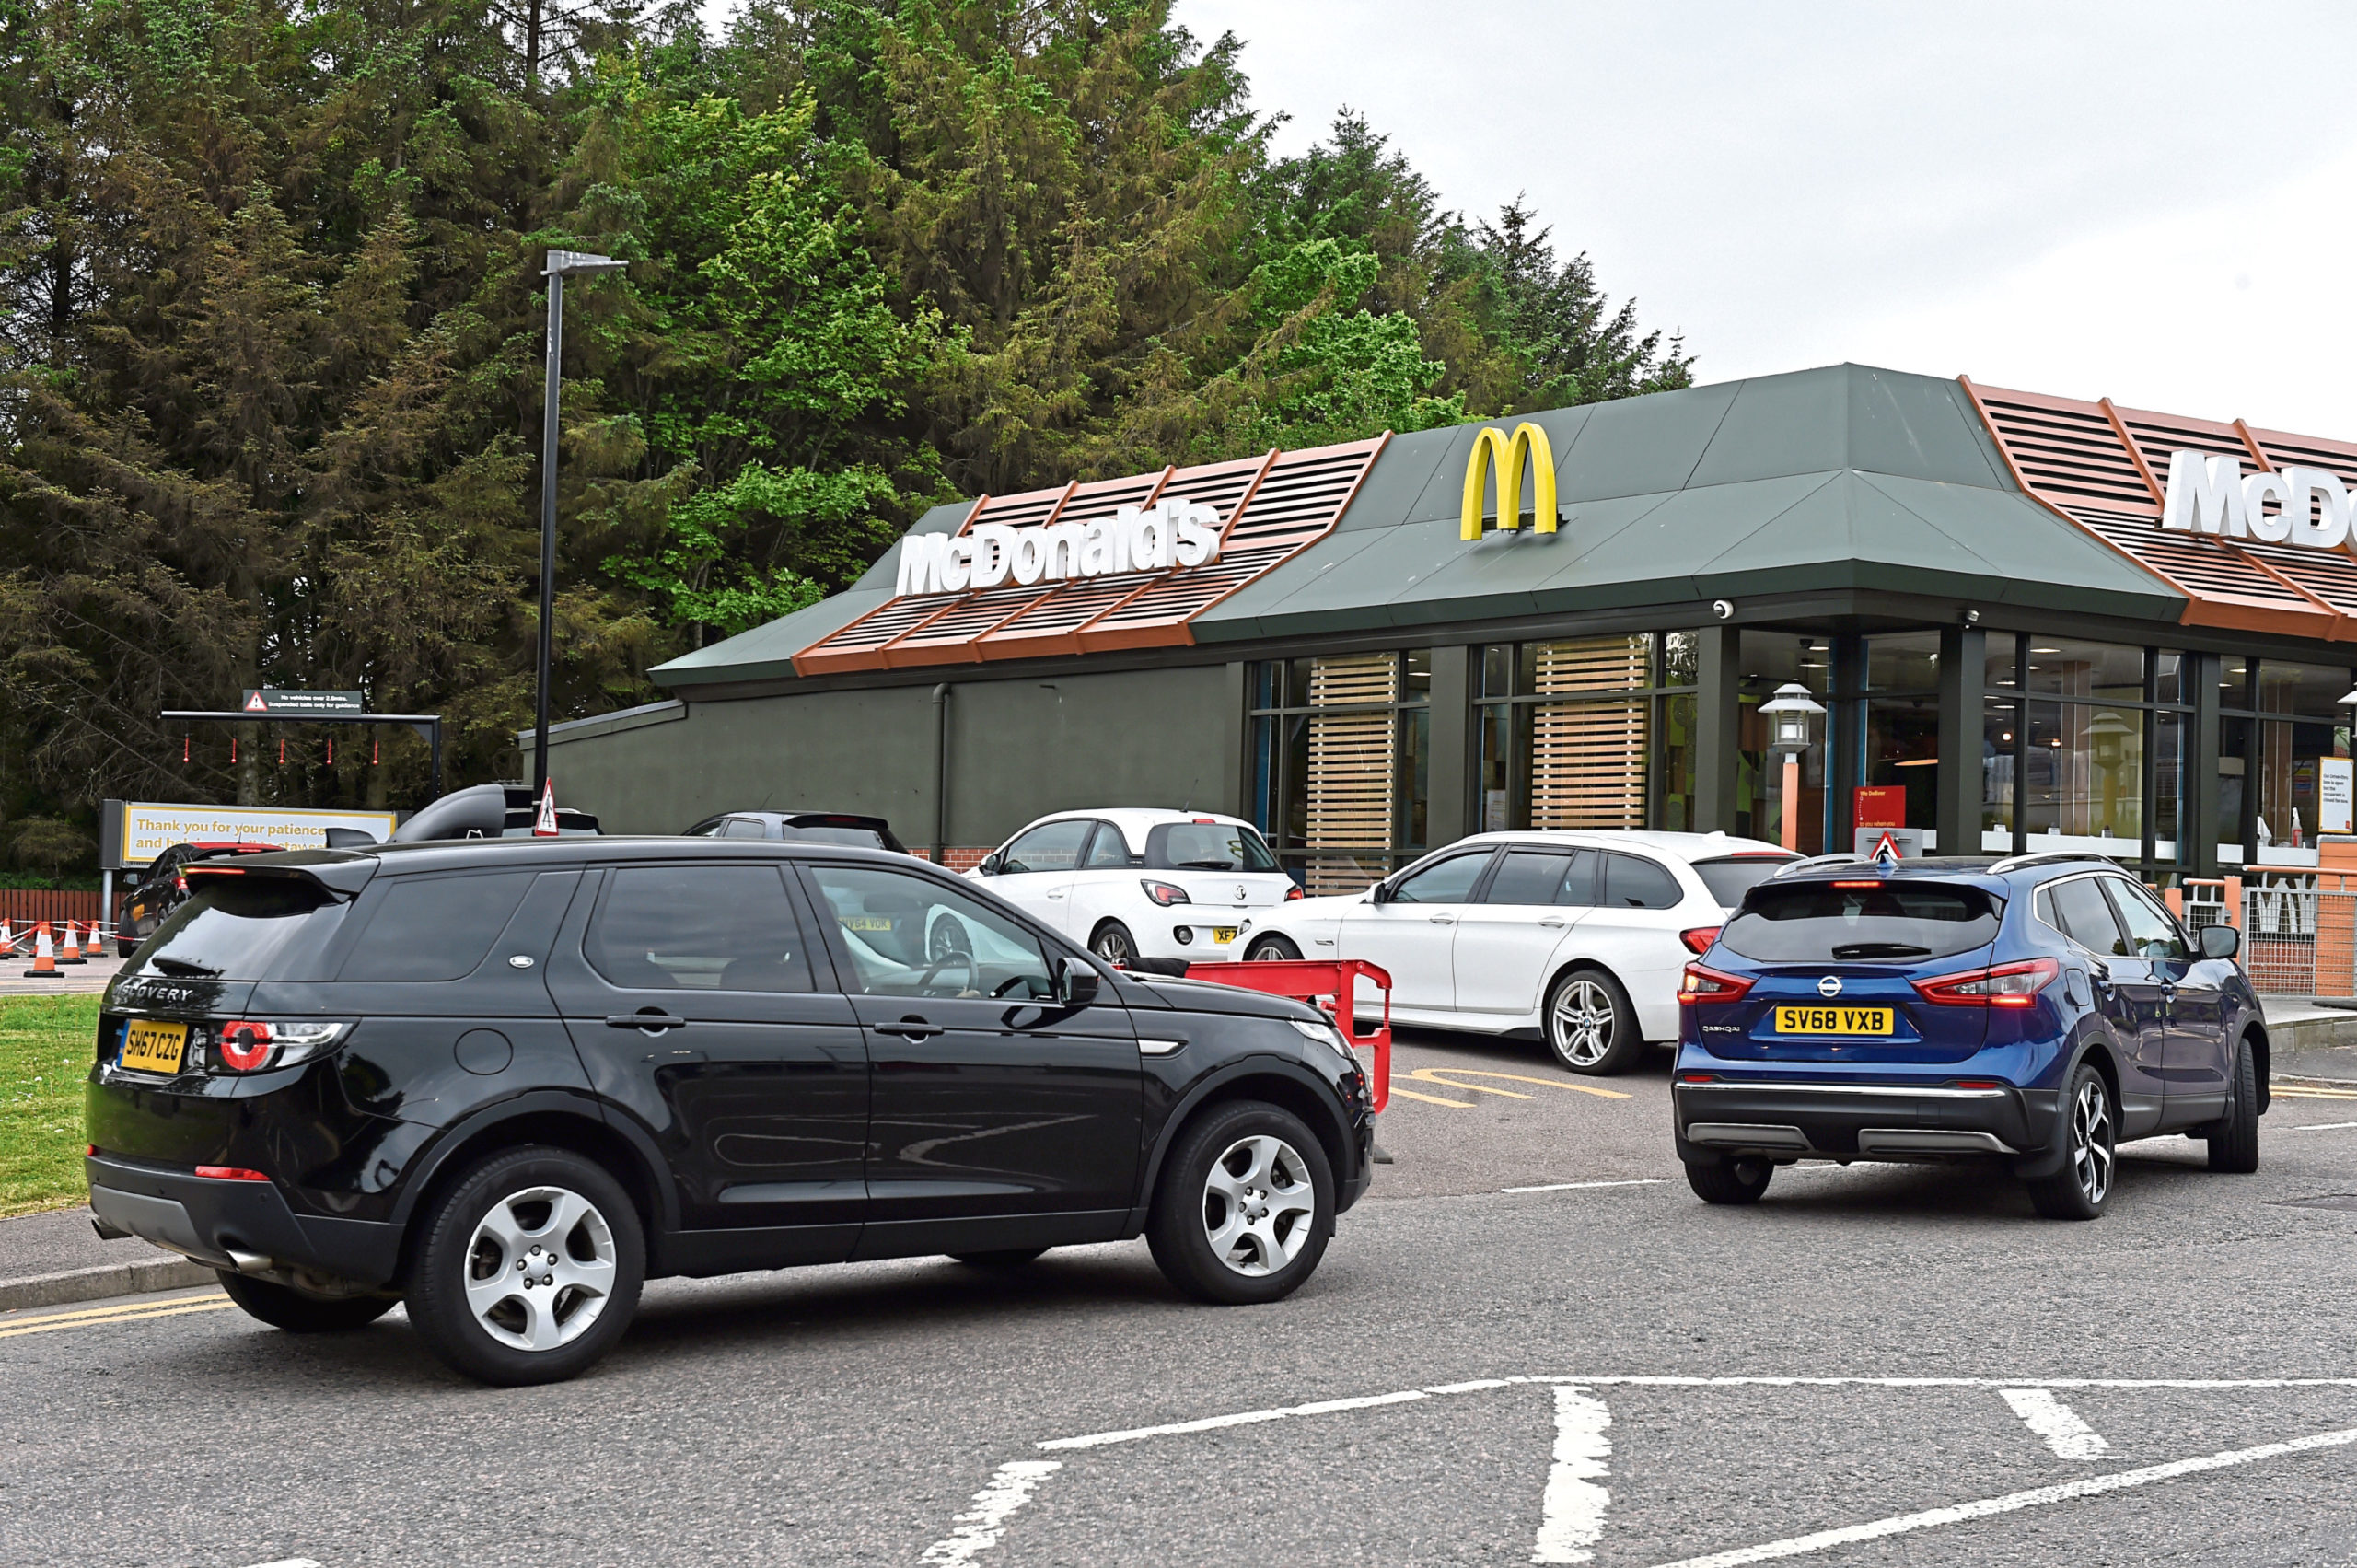 McDonalds at Broadfold Road in Bridge of Don, Aberdeen. Picture by Kenny Elrick